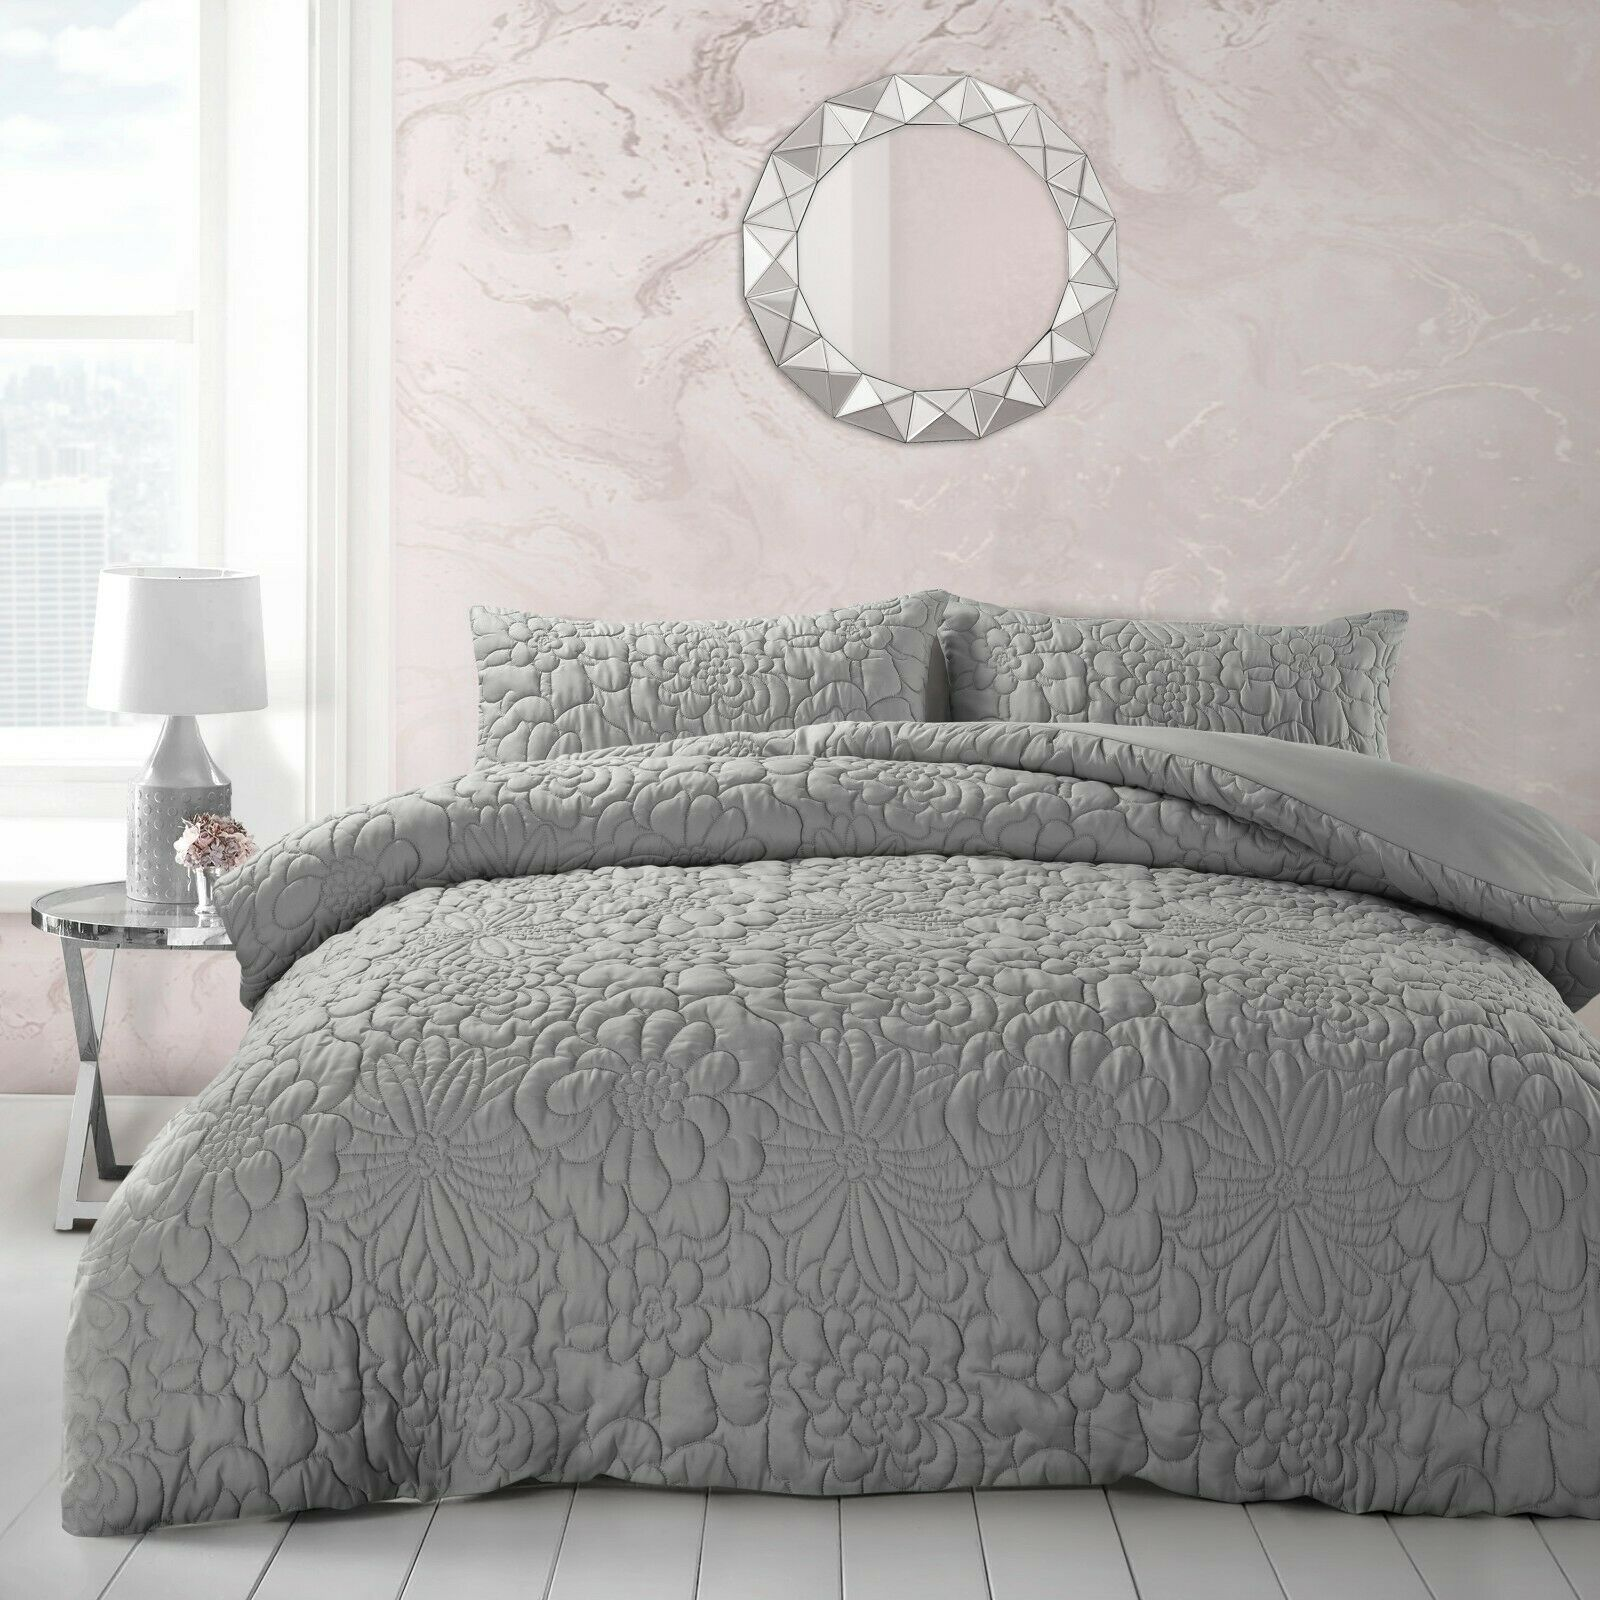 Embossed Luxury Floral Pinsonic Quilted Bedding Duvet Cover And Pillowcases Set Grey